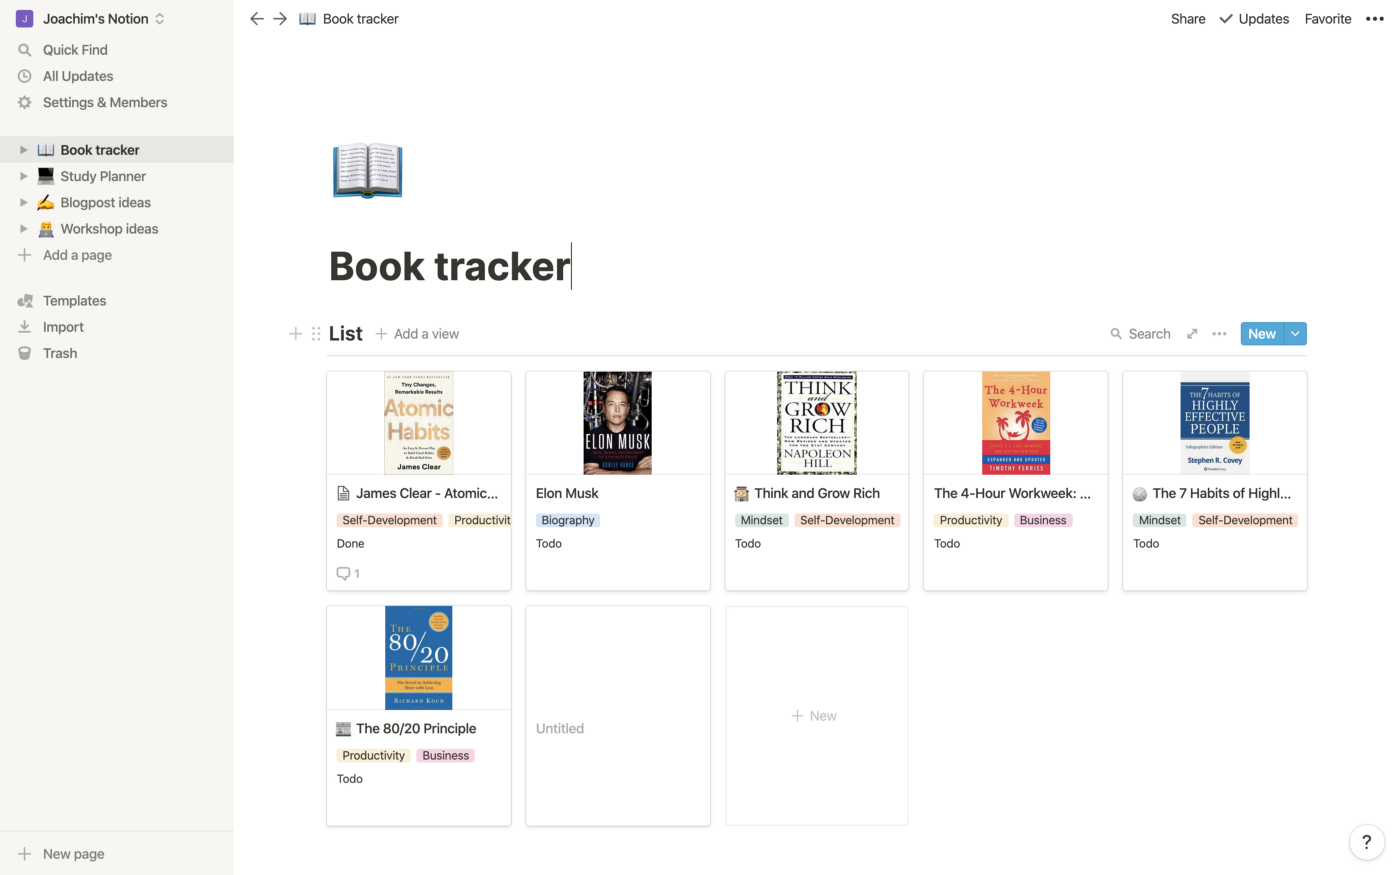 A book tracker template created in Notion.